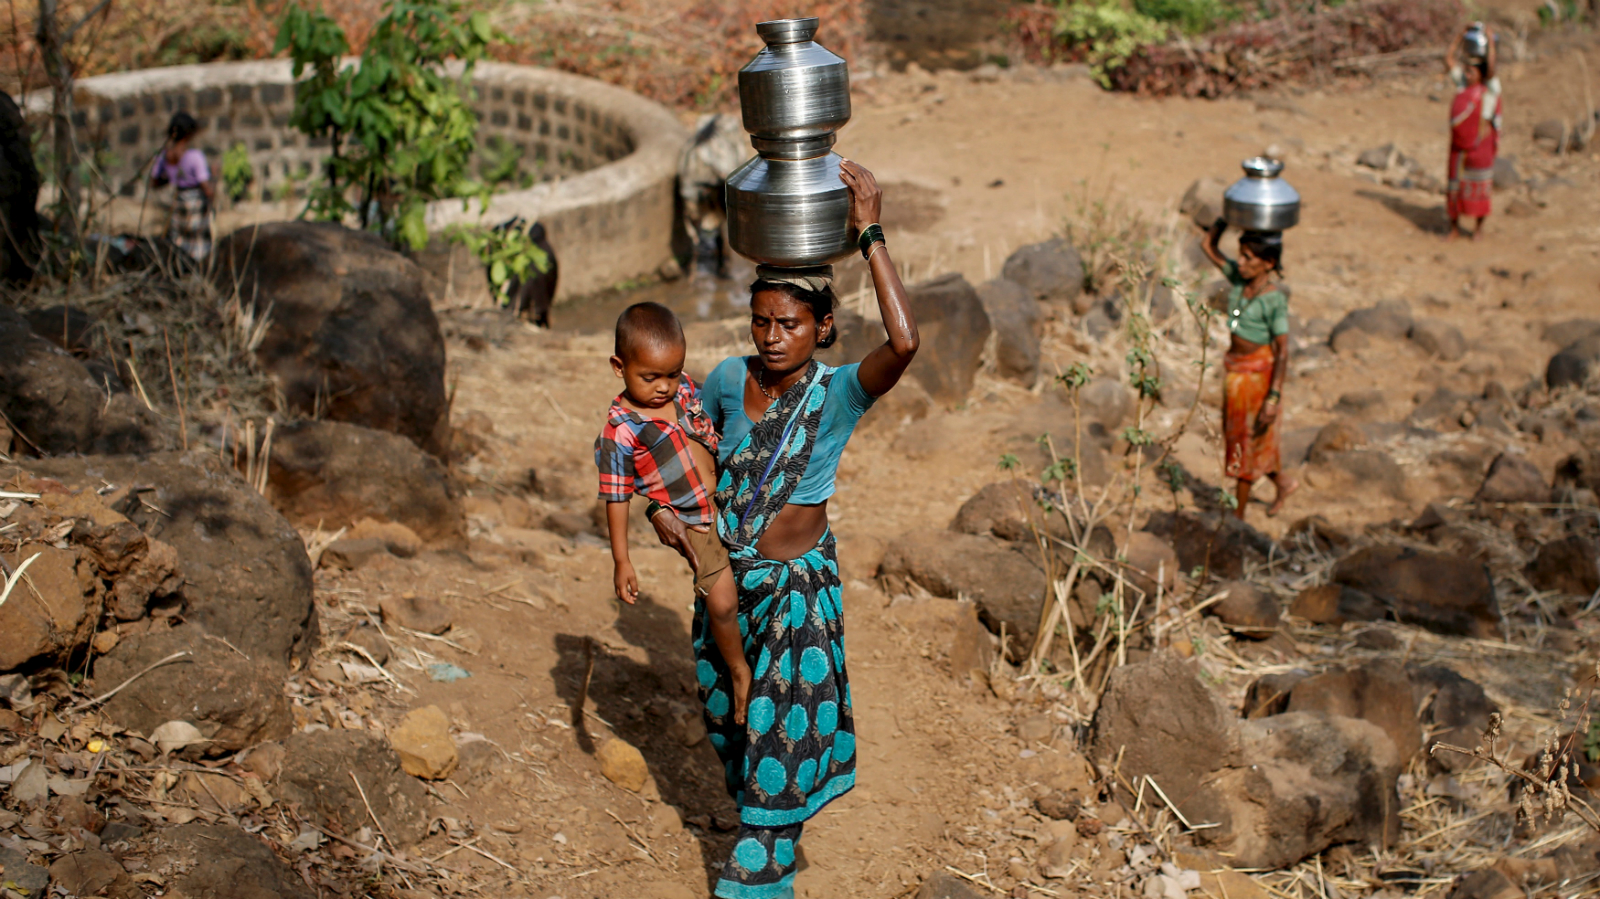 "DATE IMPORTED:June 04, 2015Shivarti, the second wife of Namdeo, holds her grandson while carrying metal pitchers filled with water from a well outside Denganmal village, Maharashtra, India, April 21, 2015. In Denganmal, a village in Maharashtra state, some men take a second or third wife just to make sure their households have enough drinking water. Becoming what are known as ""water wives"" allows the women, often widows or single mothers, to regain respect in conservative rural India by carrying water from the well quite some distance from the remote village. When the water wife, who does not usually share the marital bed, becomes too old to continue, the husband sometimes takes a third and younger spouse to fetch the water in metal pitchers or makeshift containers. REUTERS/Danish Siddiqui"